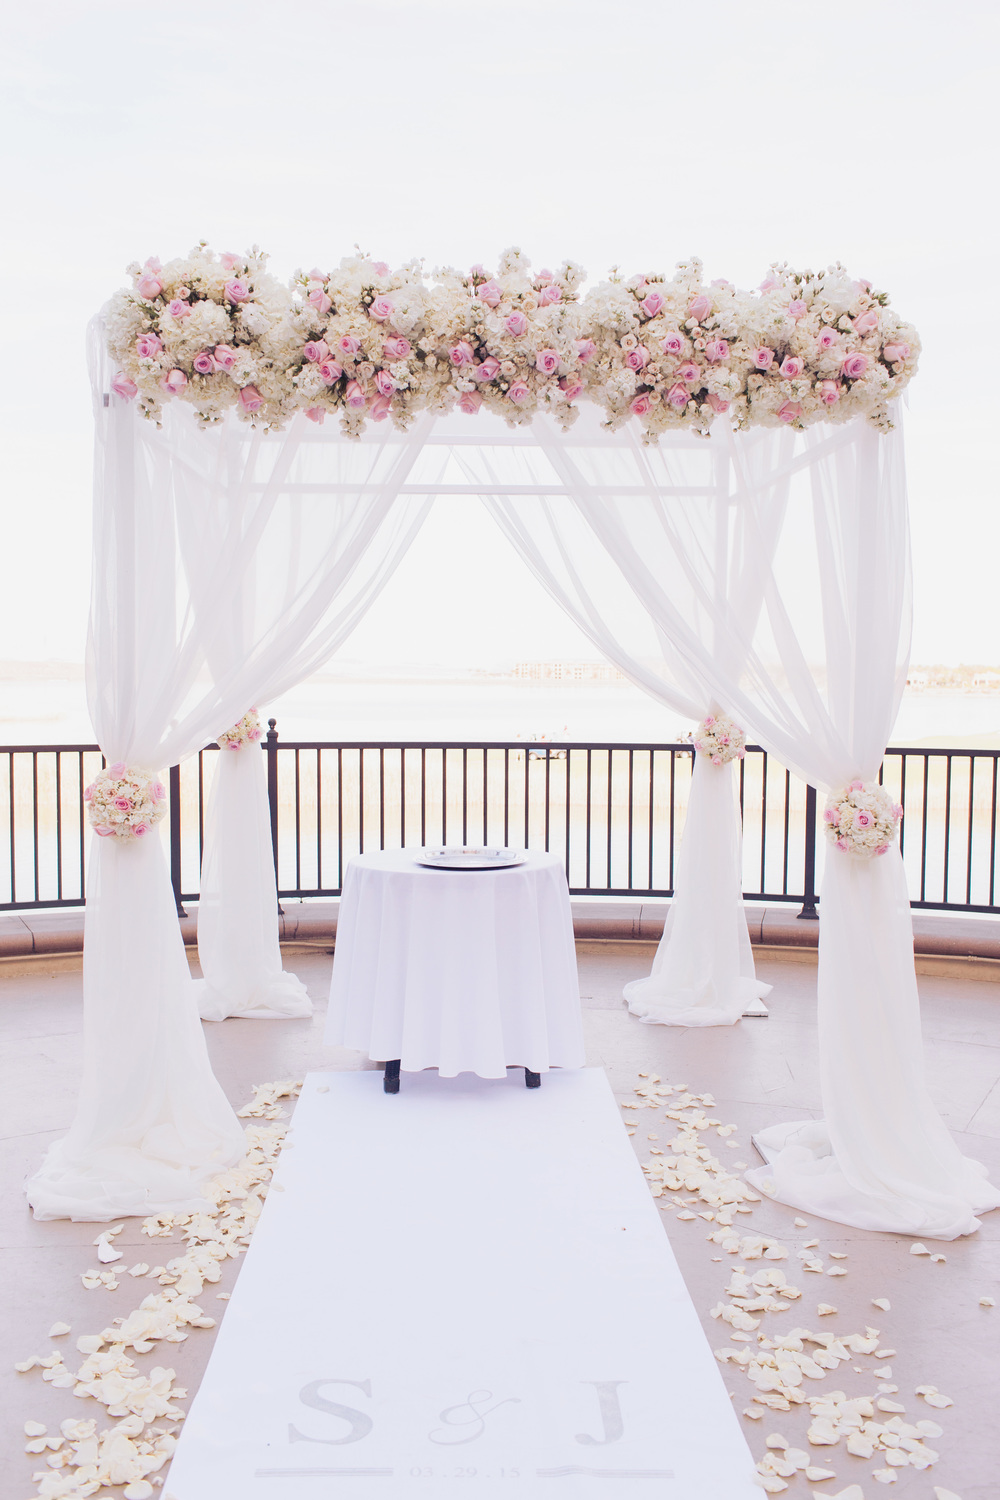 For the lakeside ceremony we dressed a chuppah in flowing ivory fabric topped with ivory and pale pink roses.  Matching topiaries lined the aisle.       Las Vegas Wedding Planner Andrea Eppolito  |  Wedding at Lake Las Vegas  | White and Blu  sh and Grey Wedding | Luxury Wedding Las Vegas